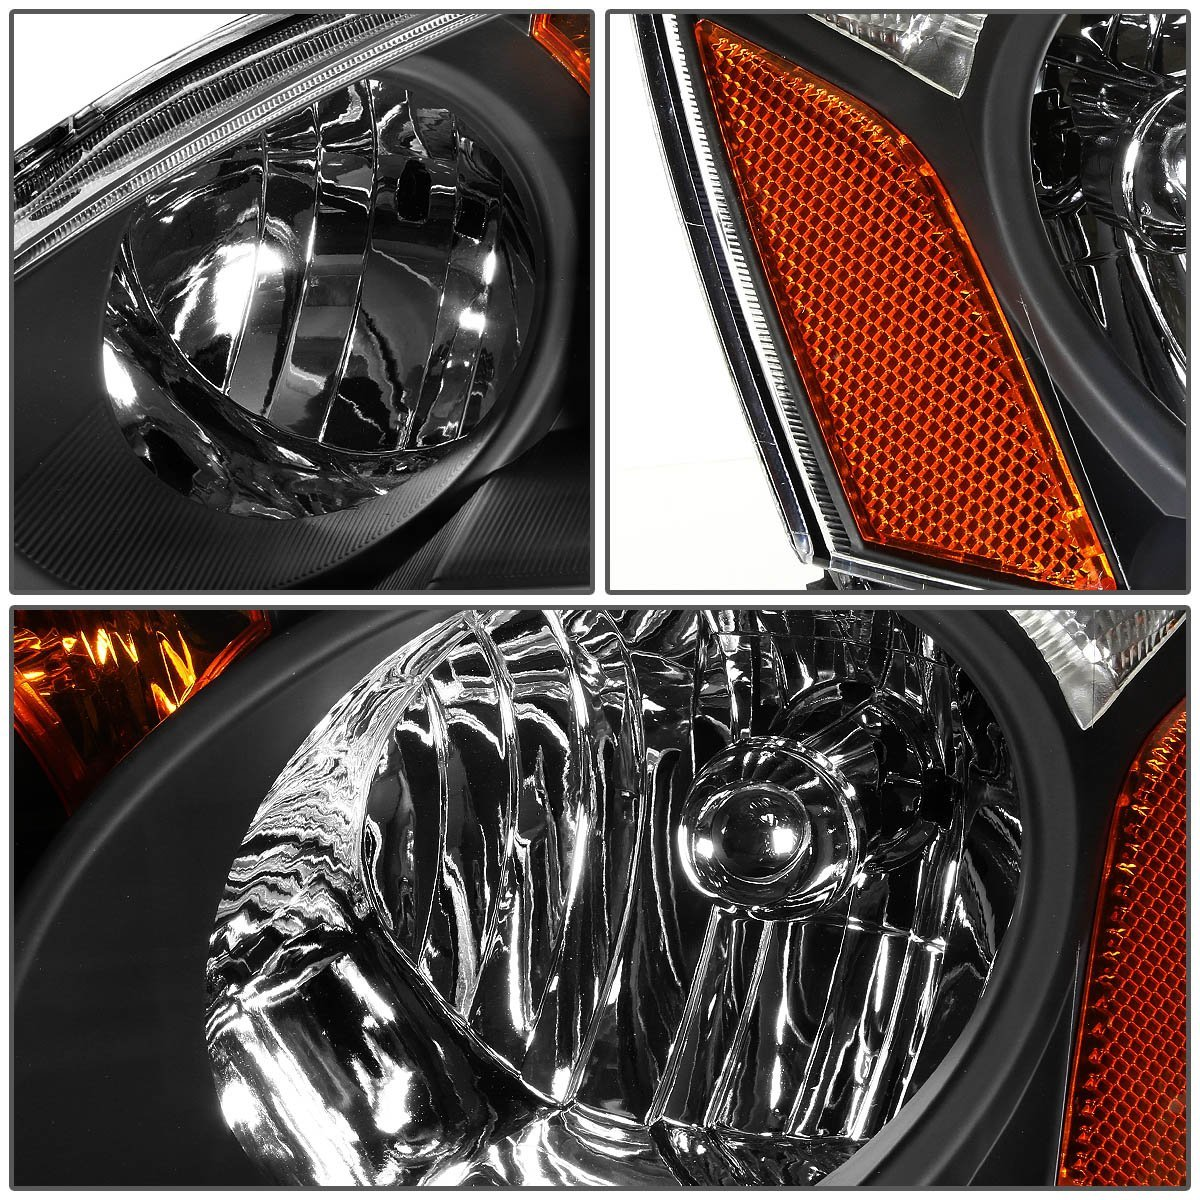 Acura Rsx Cars For Sale In Ohio: HID Xenon + 02-04 Acura RSX JDM Style Crystsal Headlights